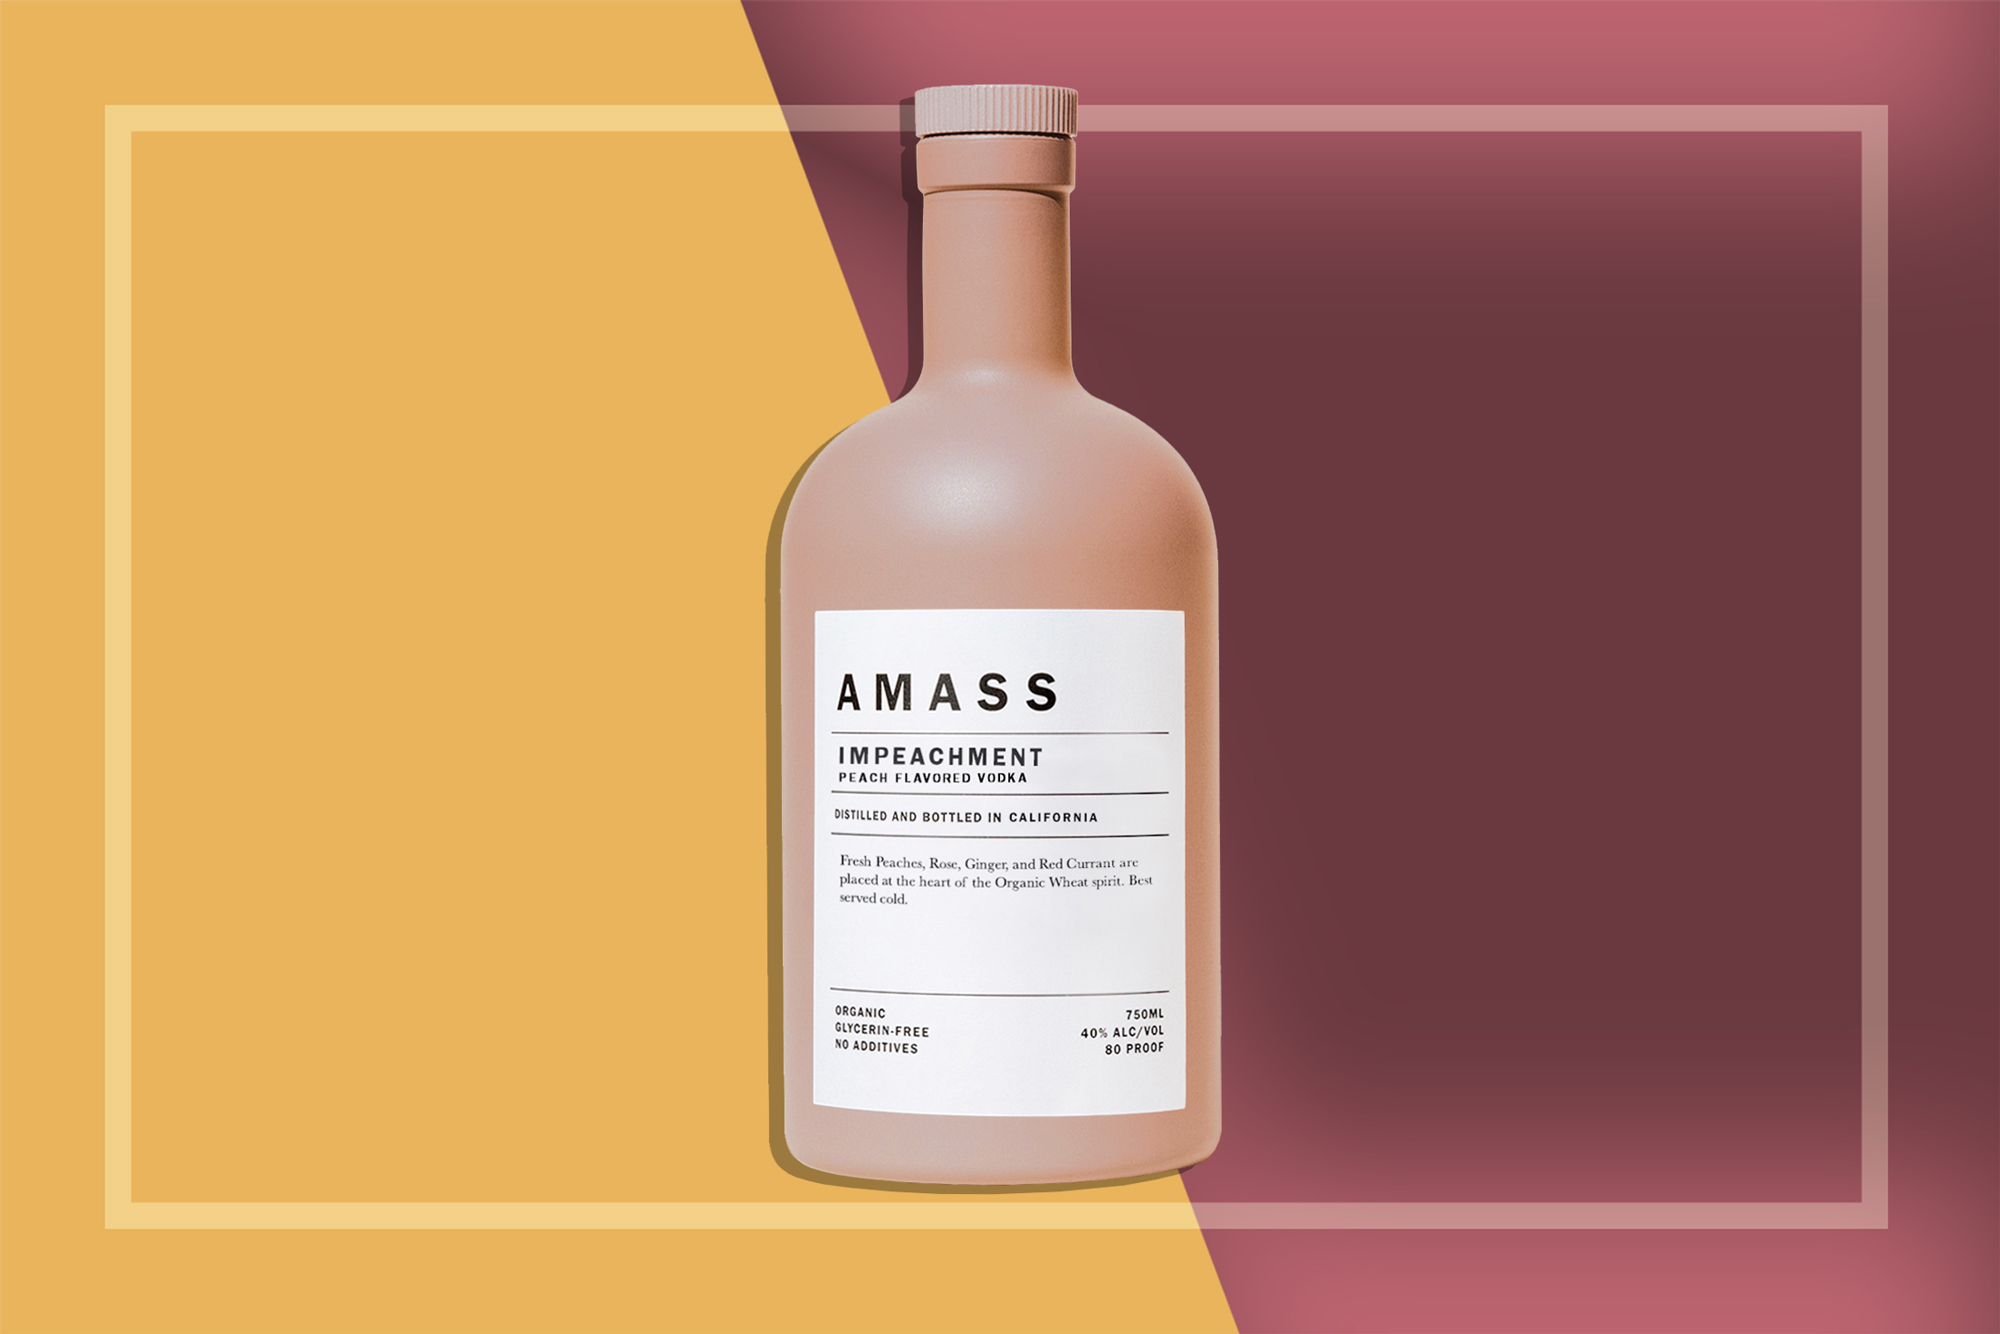 Bottle of AMASS Impeachment Peach Flavored Vodka